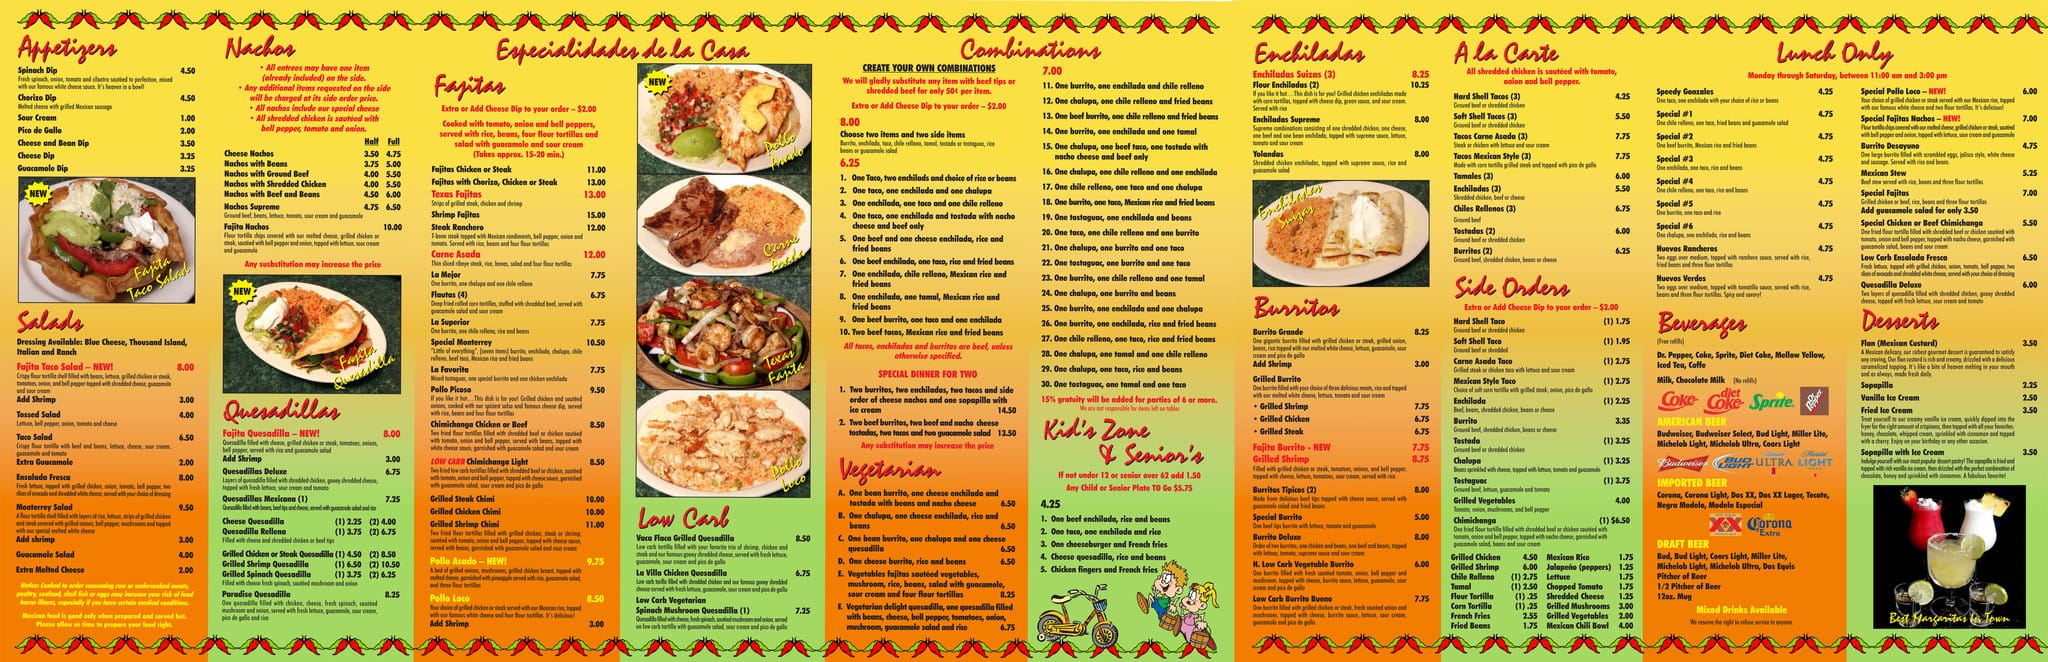 Mexican food menu in spanish and english food monterrey mexican restaurant menu urbanspoon zomato forumfinder Gallery